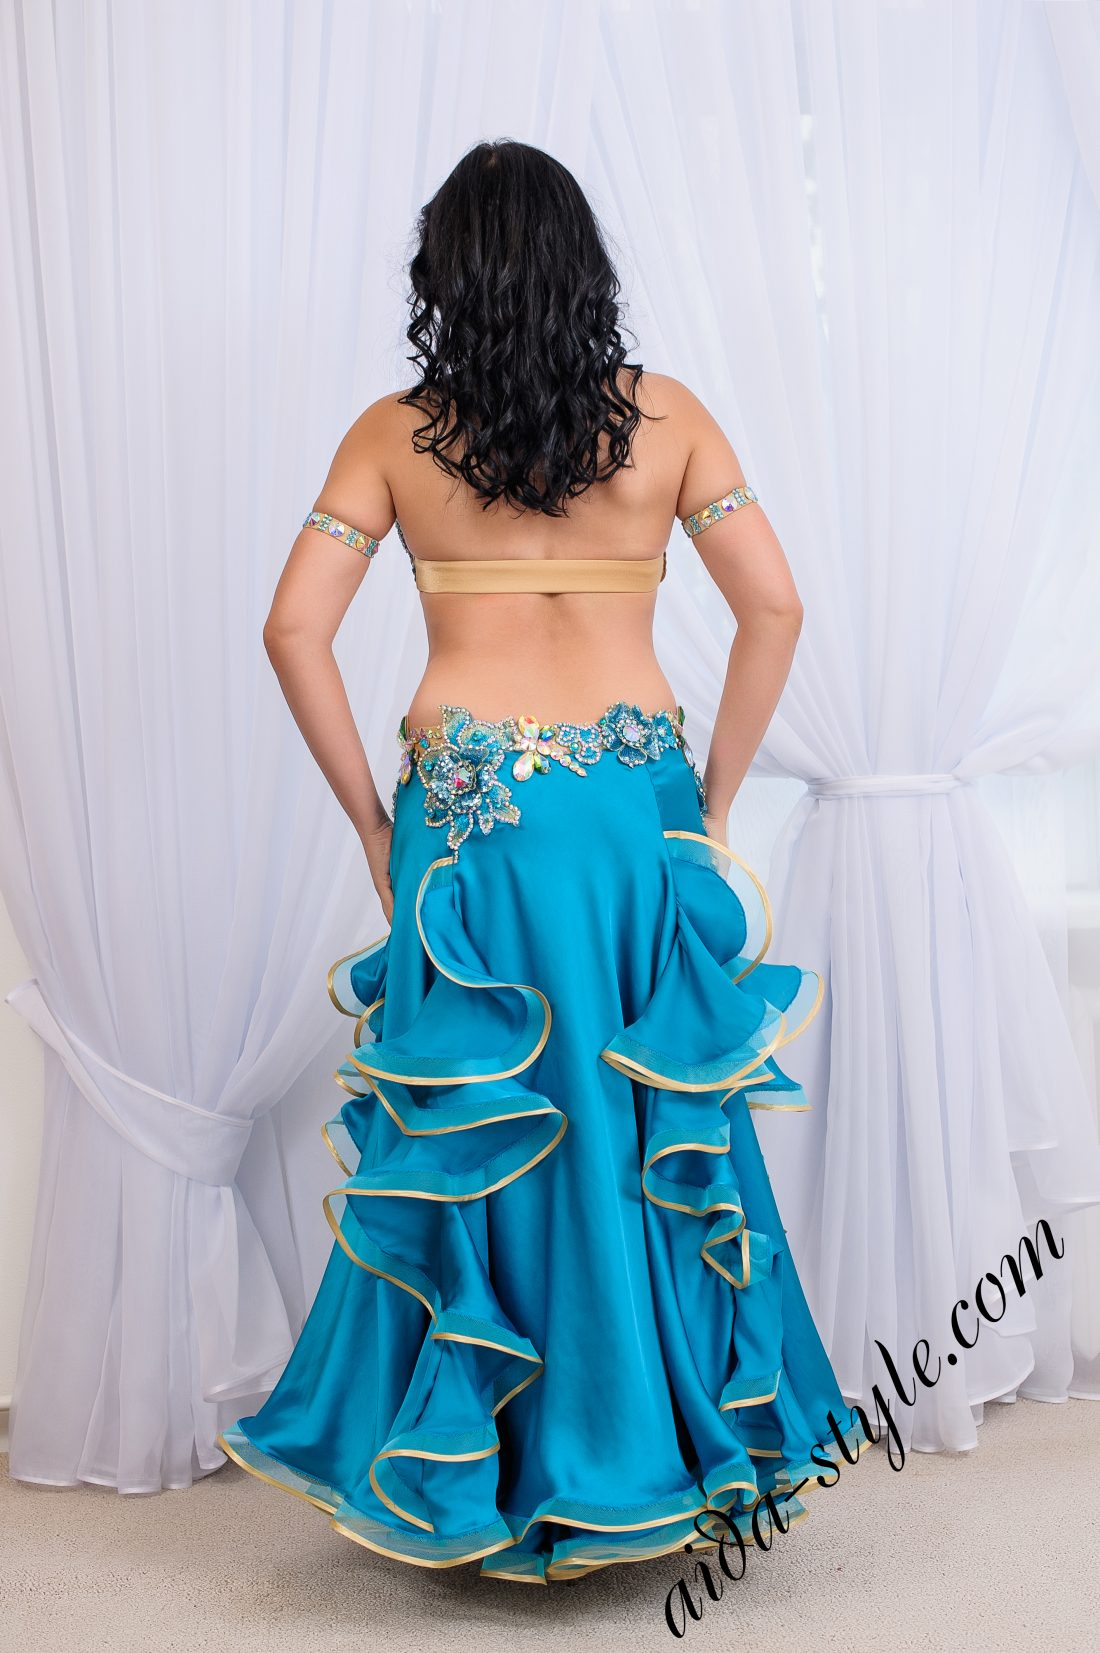 blue full costume for belly dancing with flare double skirt by Aida Style